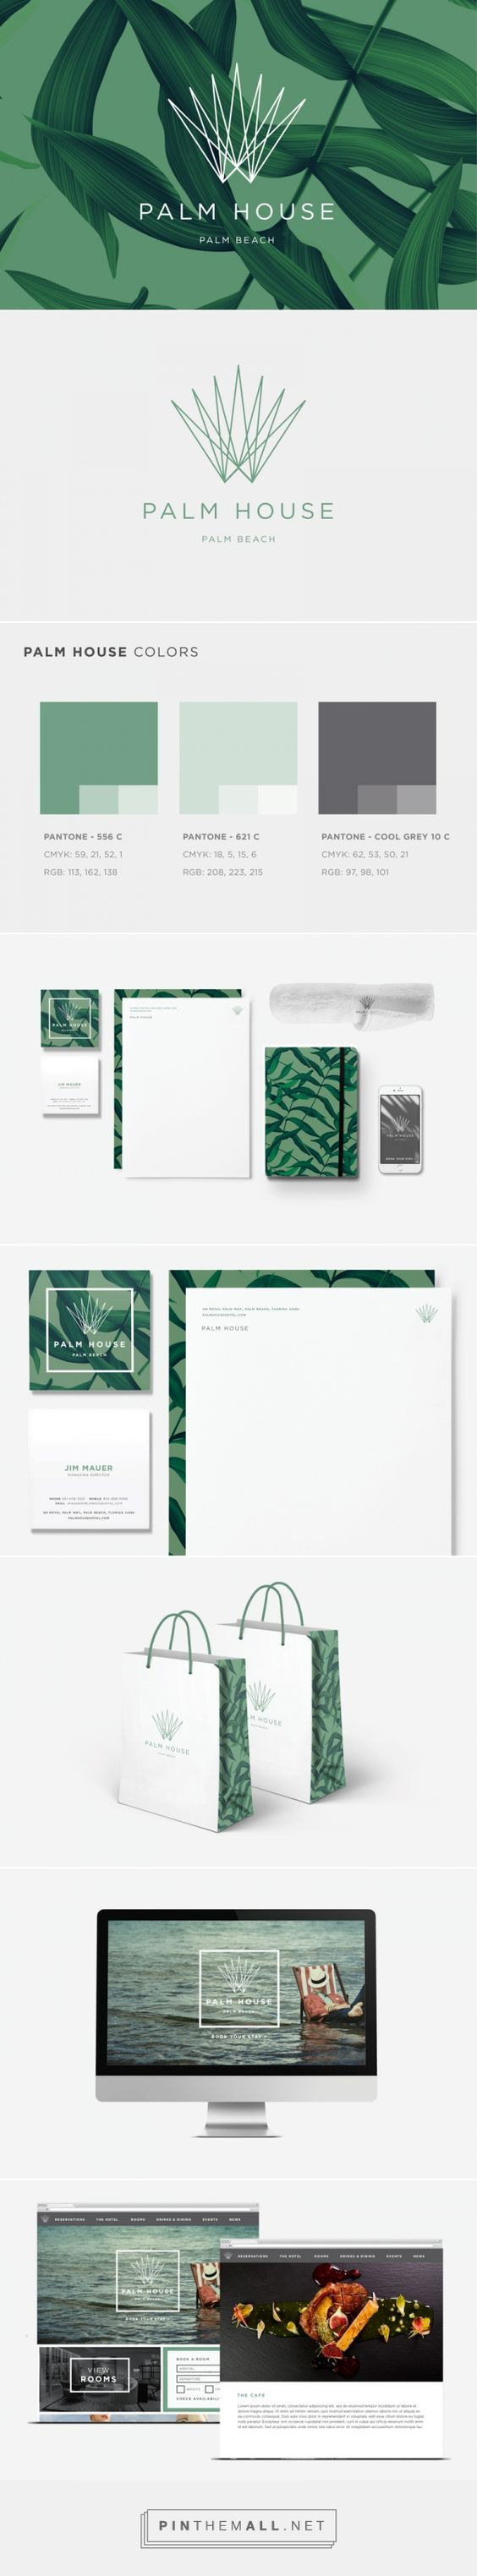 Palm House Restaurant Branding on Behance | Fivestar Branding – Design and Branding Agency & Inspiration Gallery